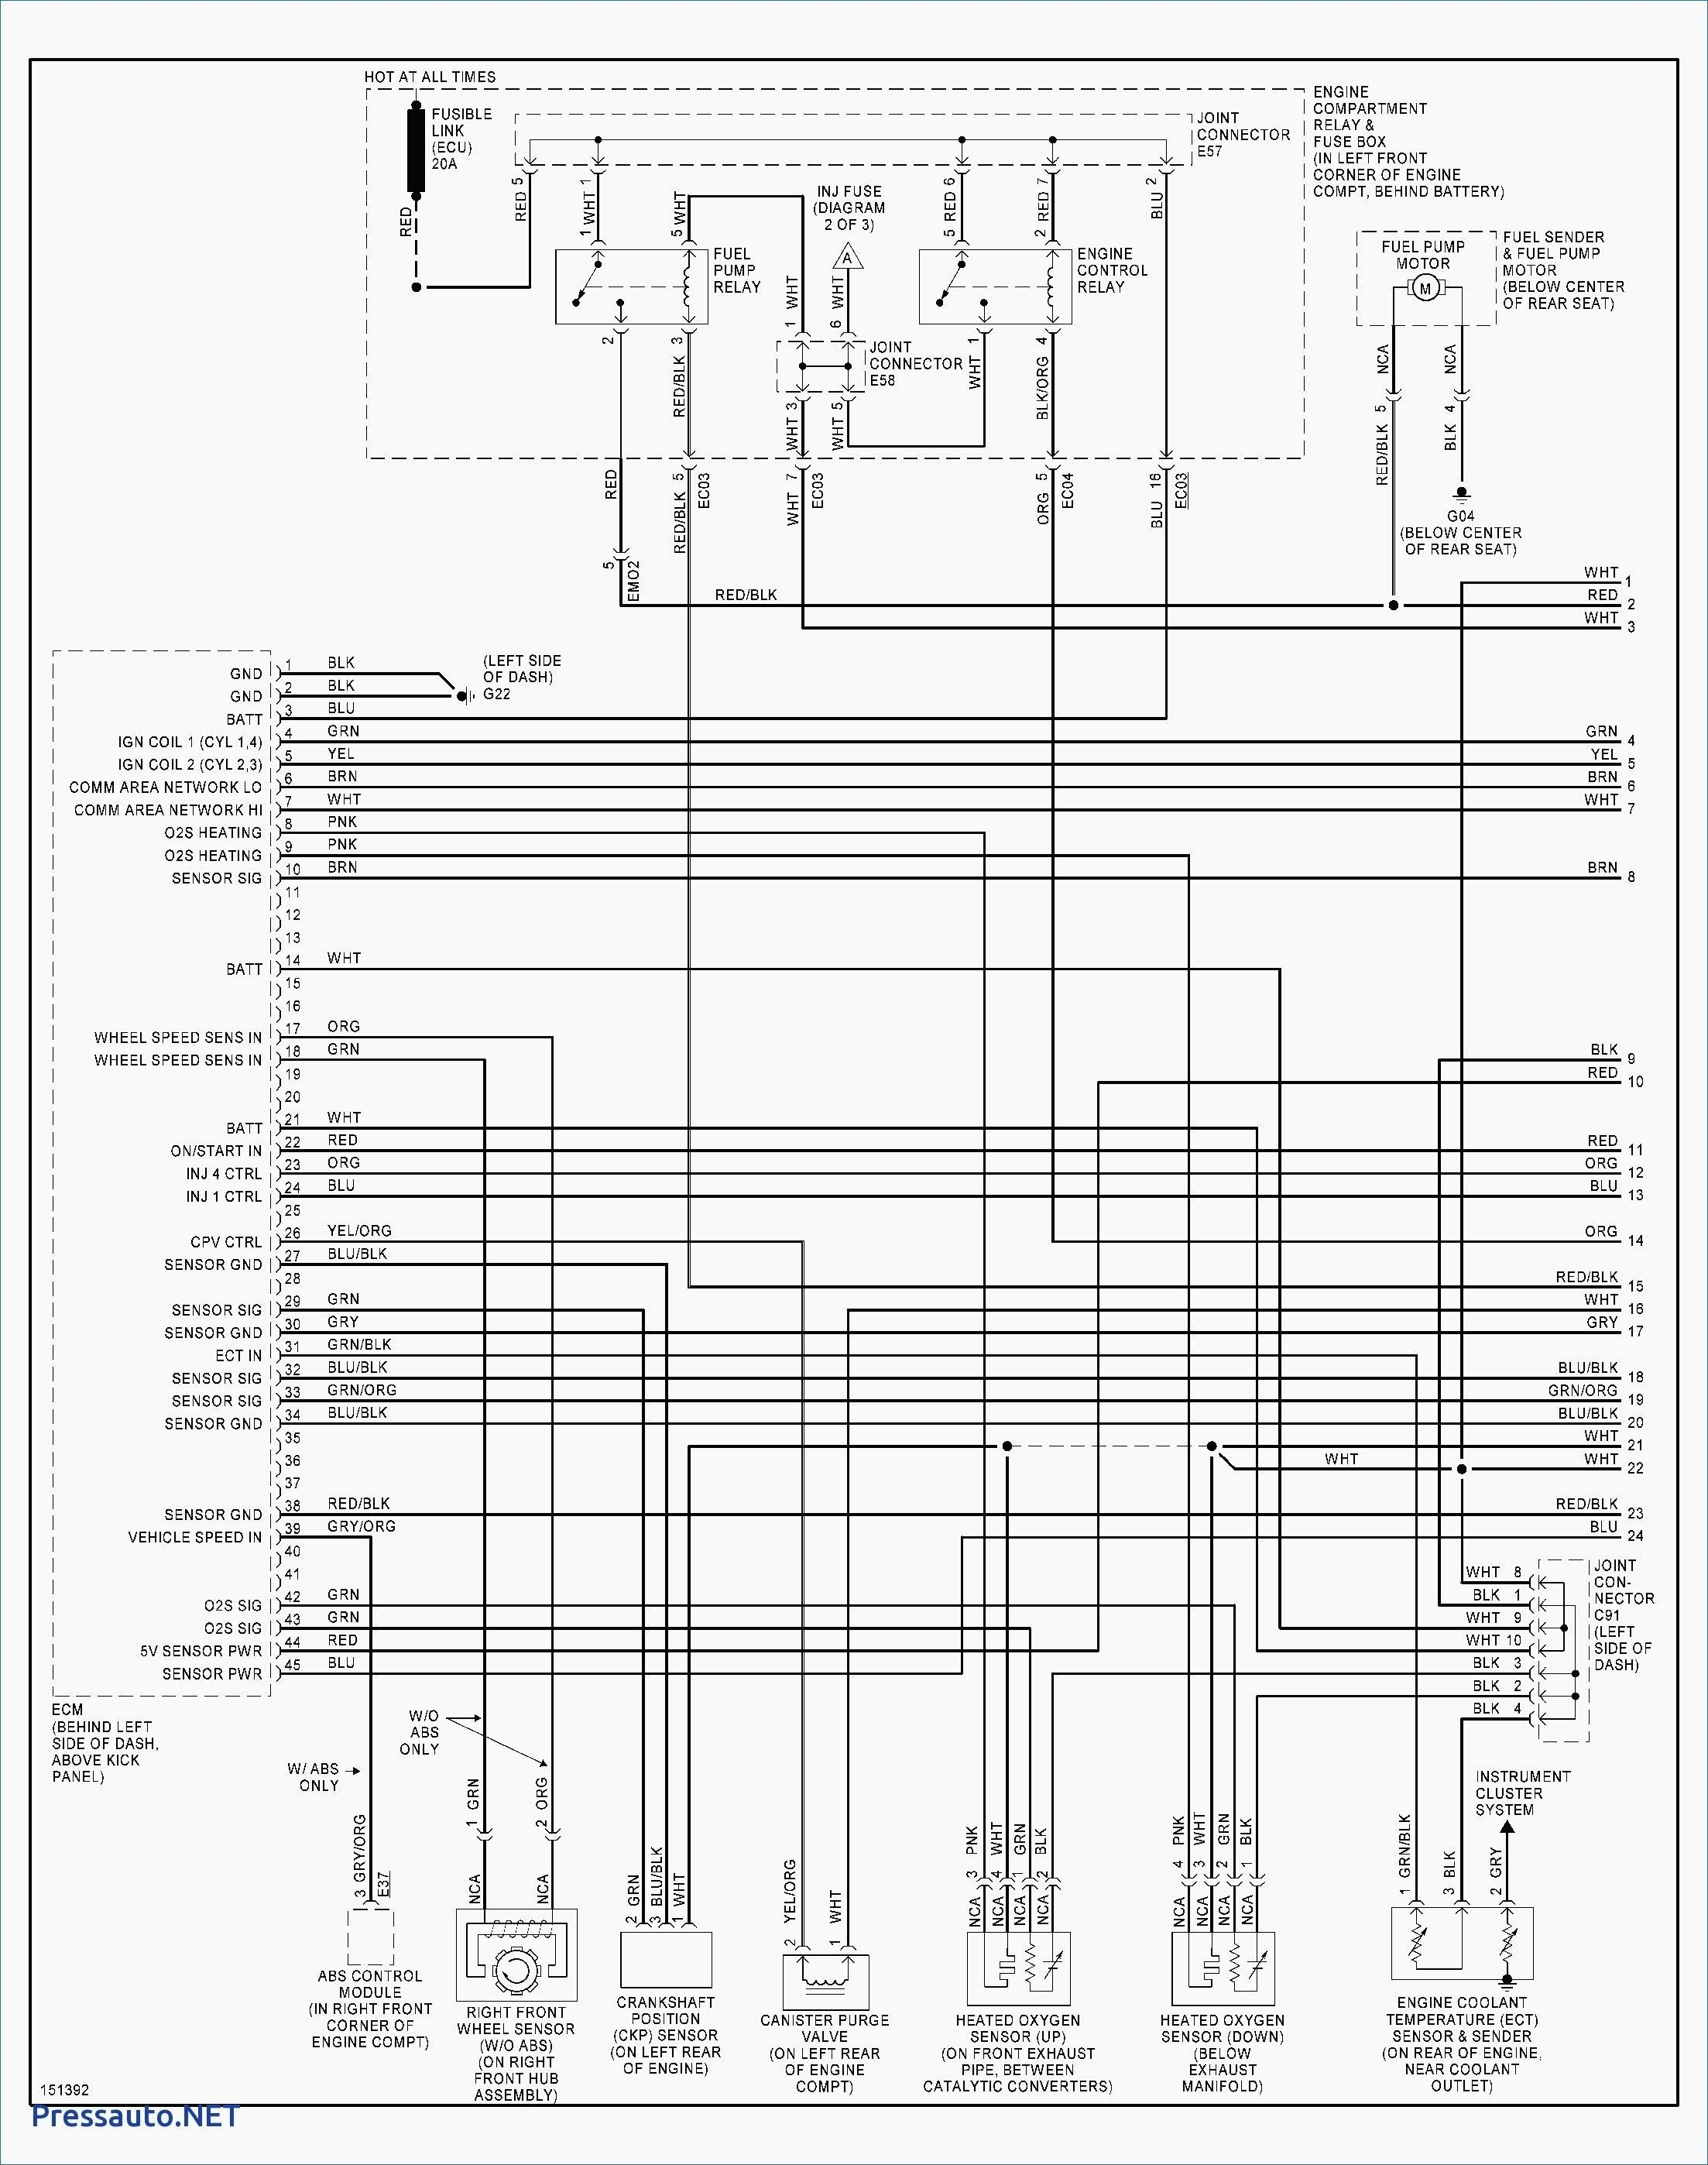 1991 ford F150 Starter Wireing Diagram] 1989 ford F150 Fuel Pump Relay Wiring Diagram Full Of 1991 ford F150 Starter Wireing